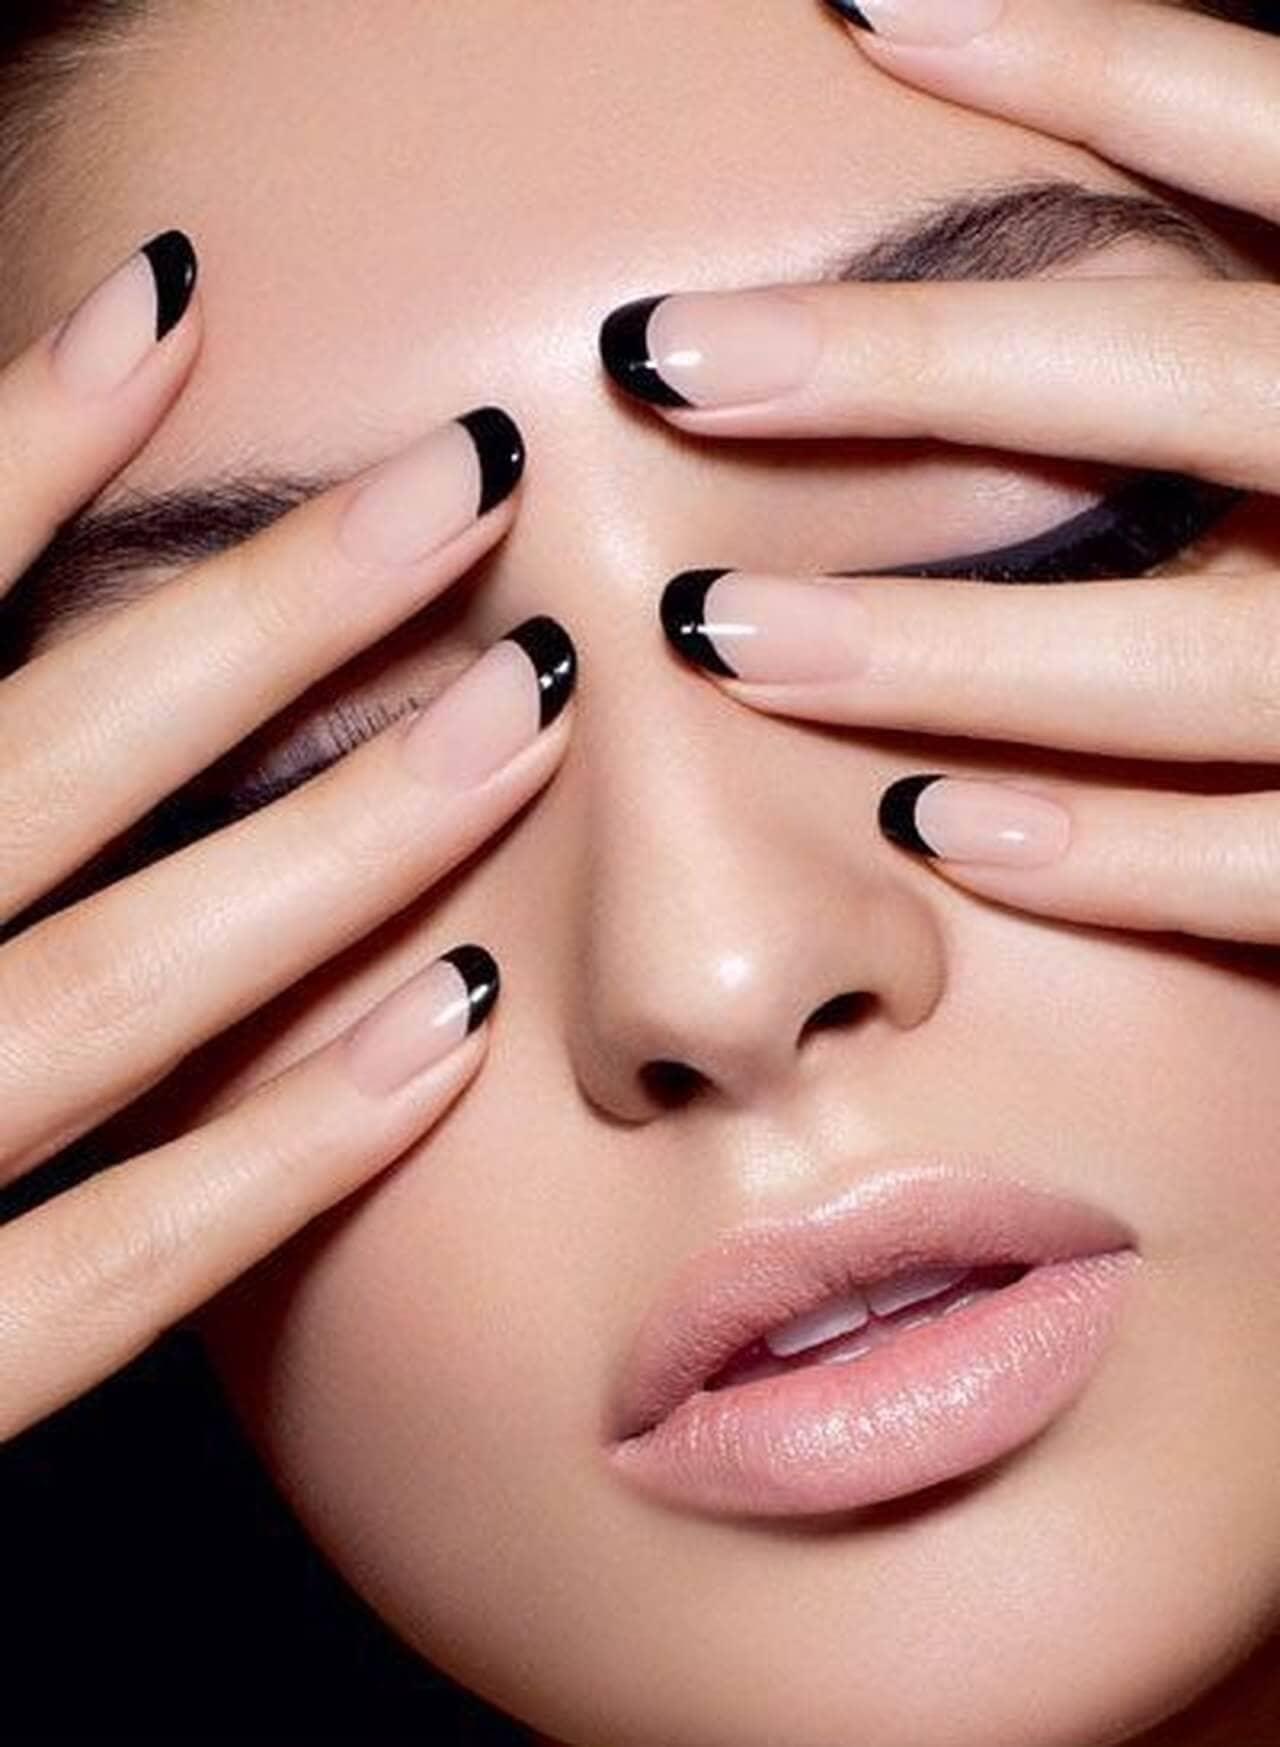 French manicure with black tips - round acrylic nails